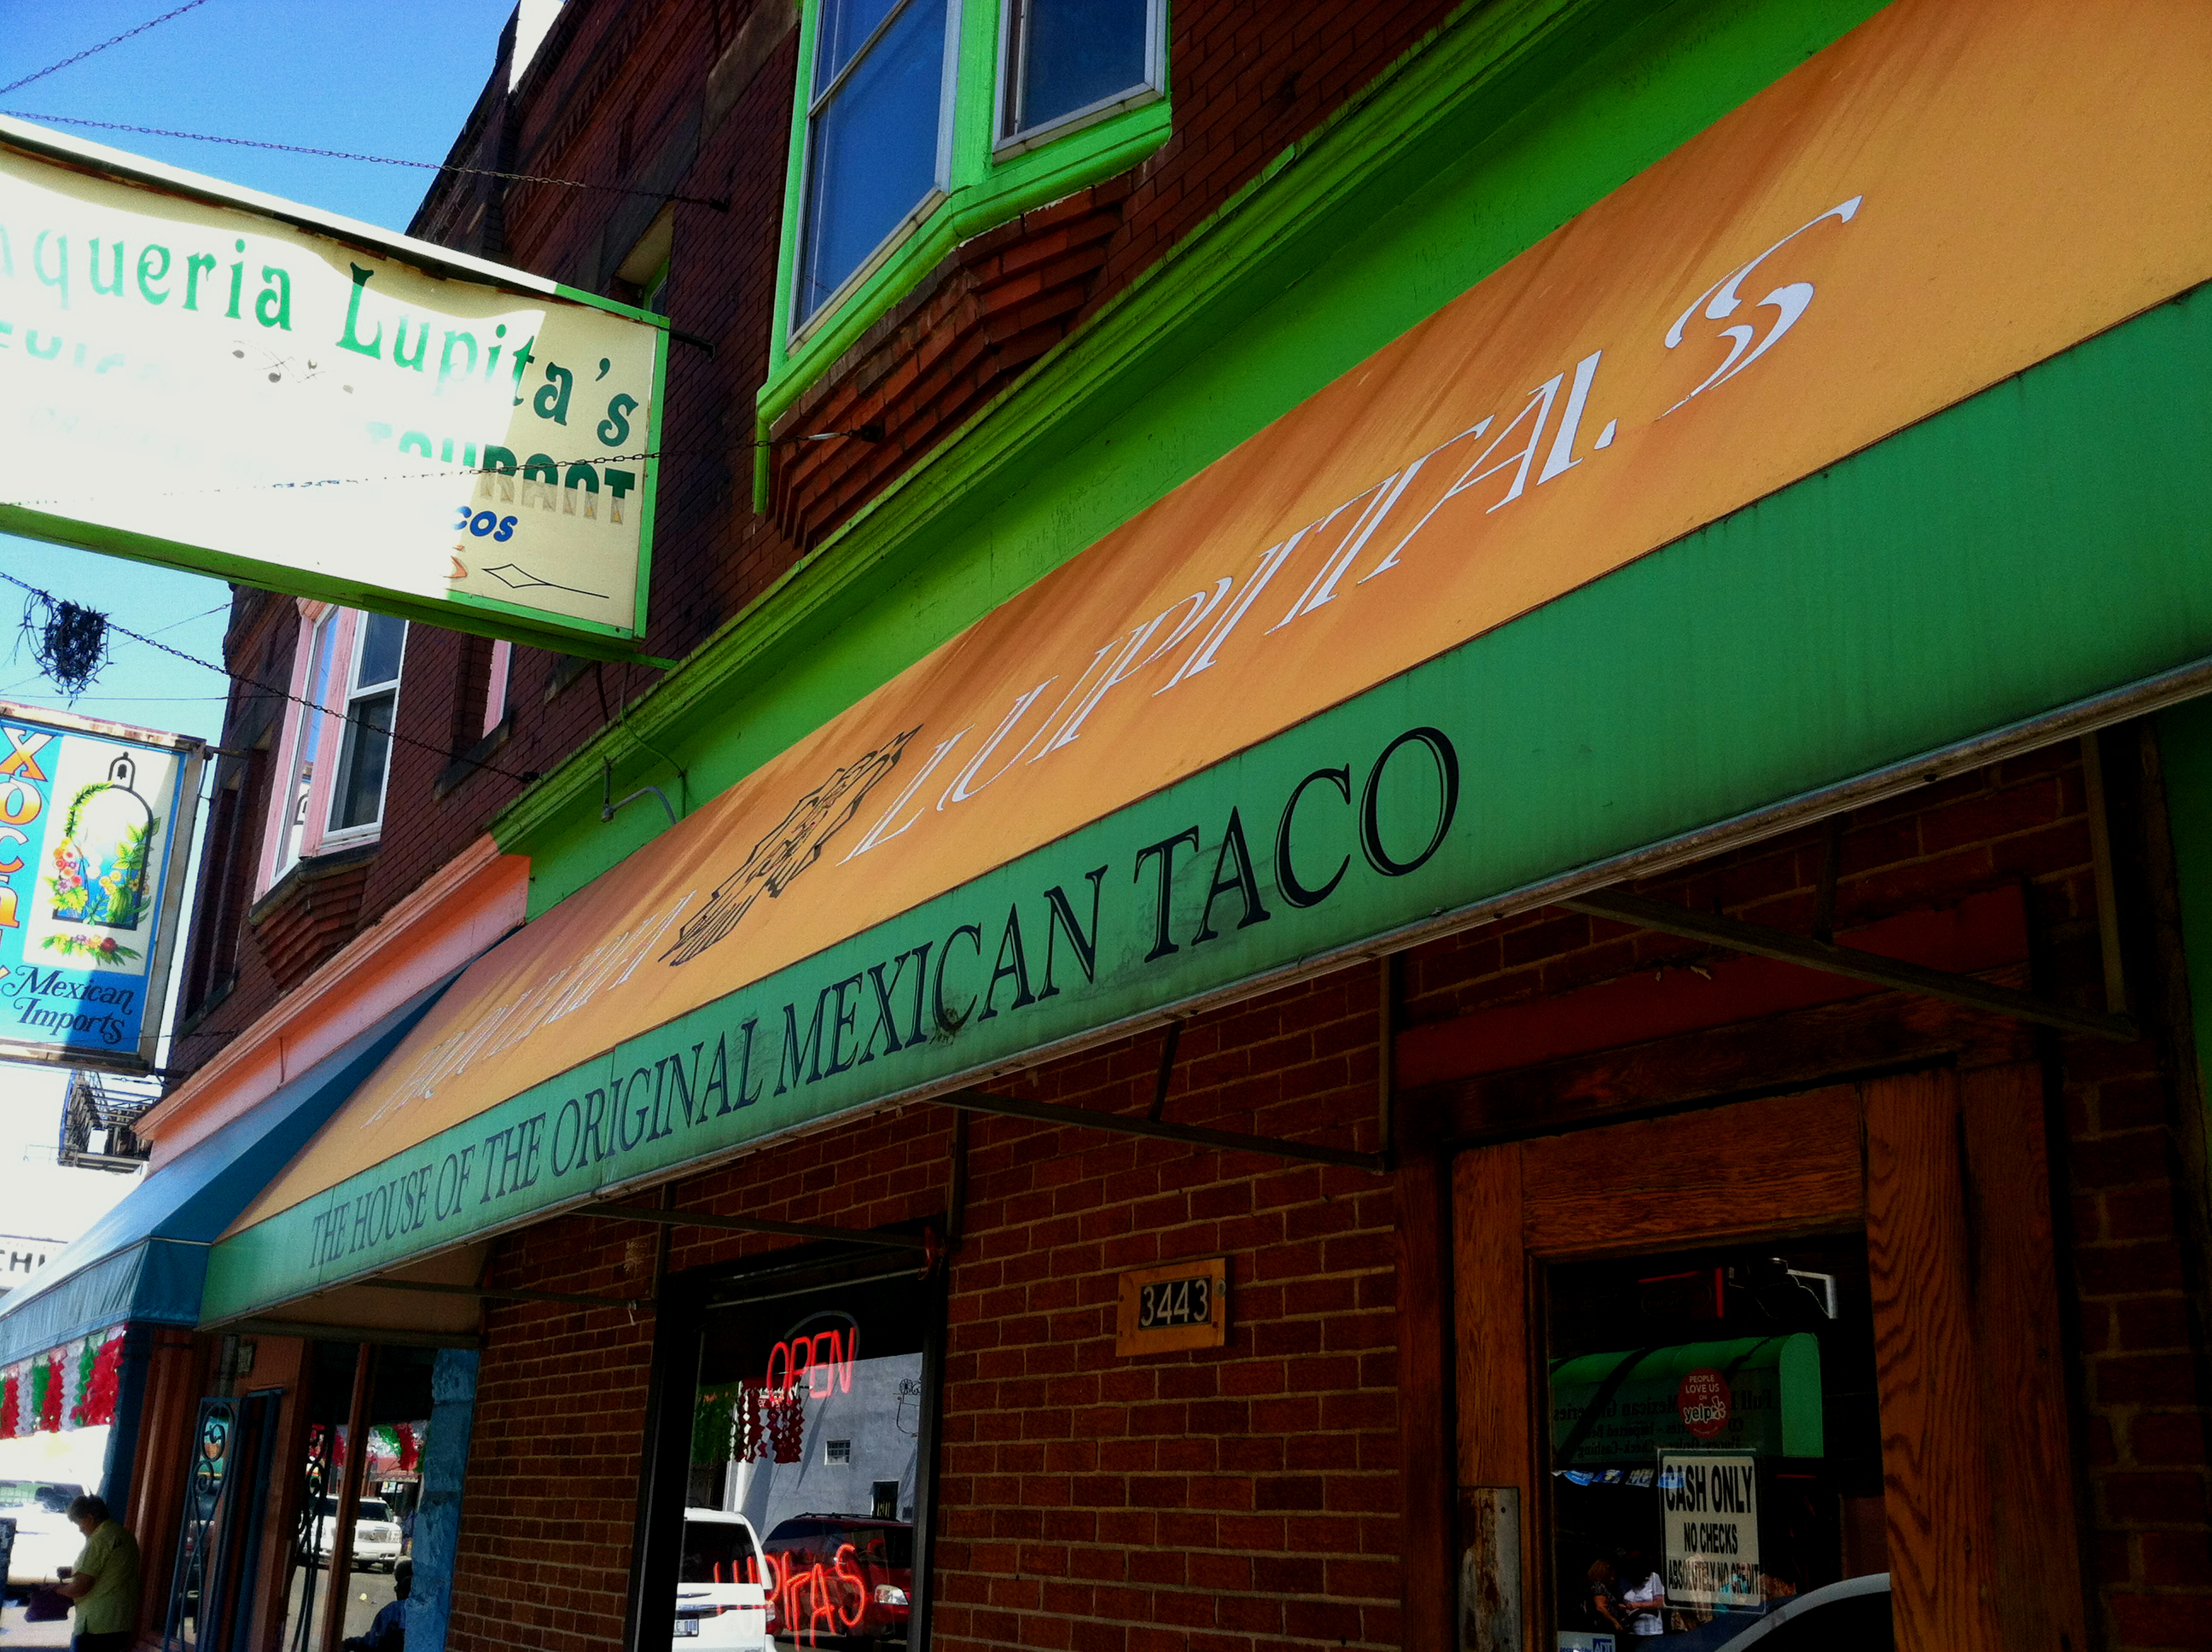 Mexicantown historian Maria Elena Rodriguez points to the opening of restaurants like Taqueria Lupita's as evidence of a trend in the '90s toward more authentic Mexican cuisine in Detroit.